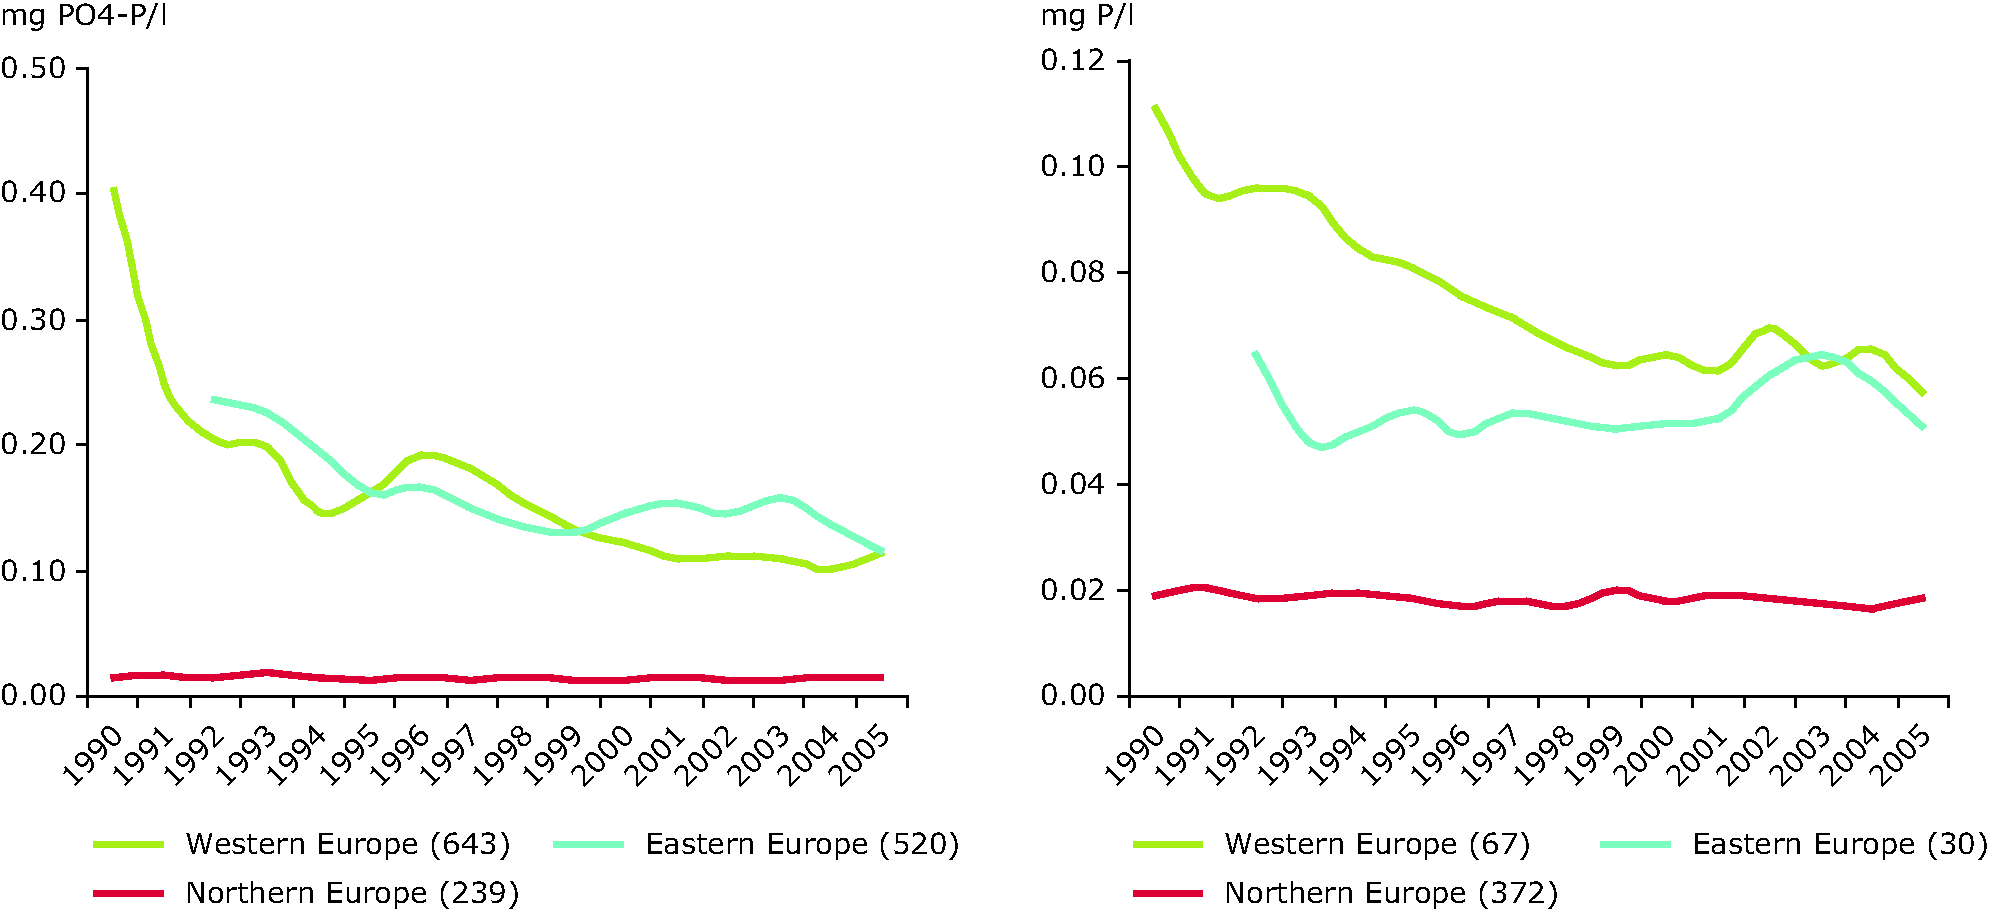 Phosphorus concentrations in rivers (left; ortophosphate) and lakes (right; total phosphorus) between 1990 and 2005 in different regions of Europe.